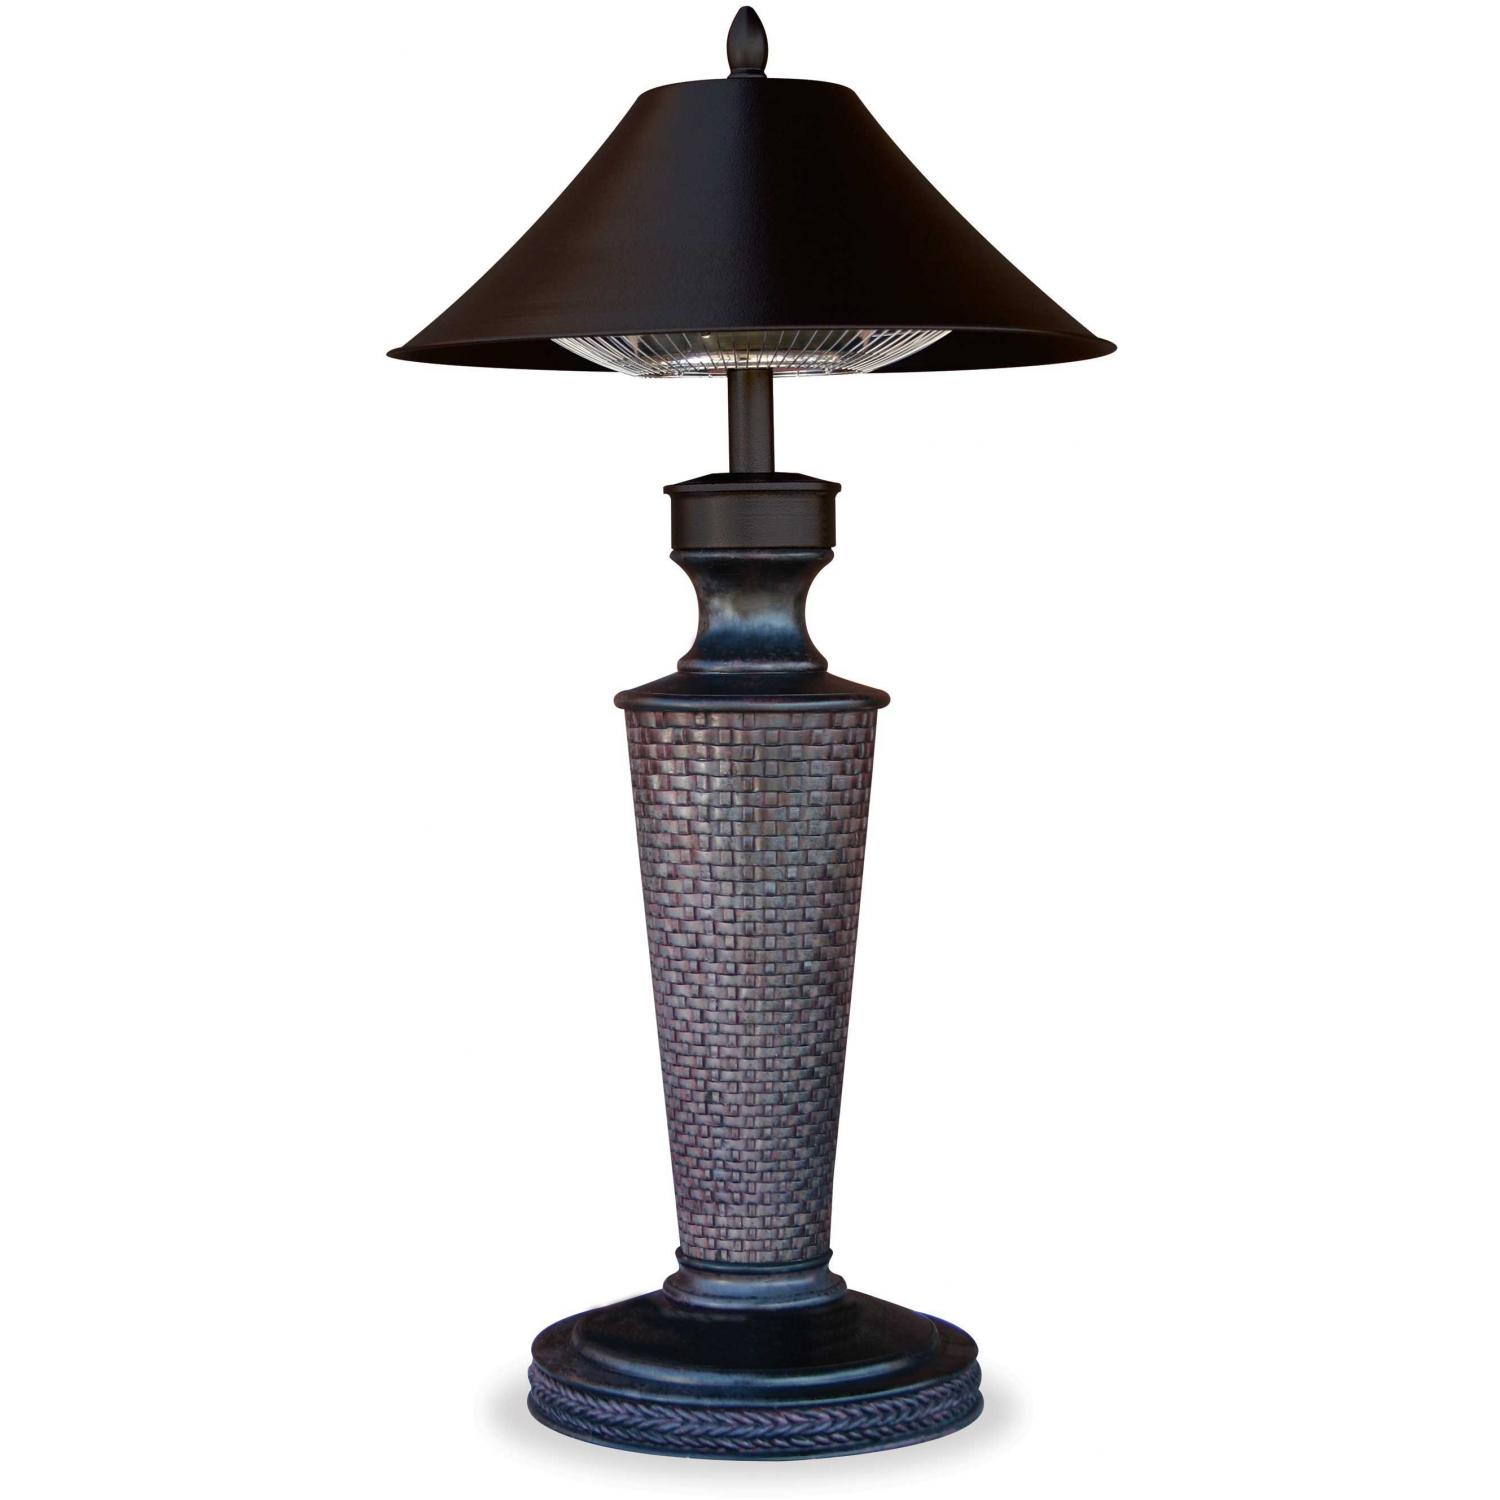 Endless Summer Patio Heaters Vacation Day Style Table Top Electric Patio Heater